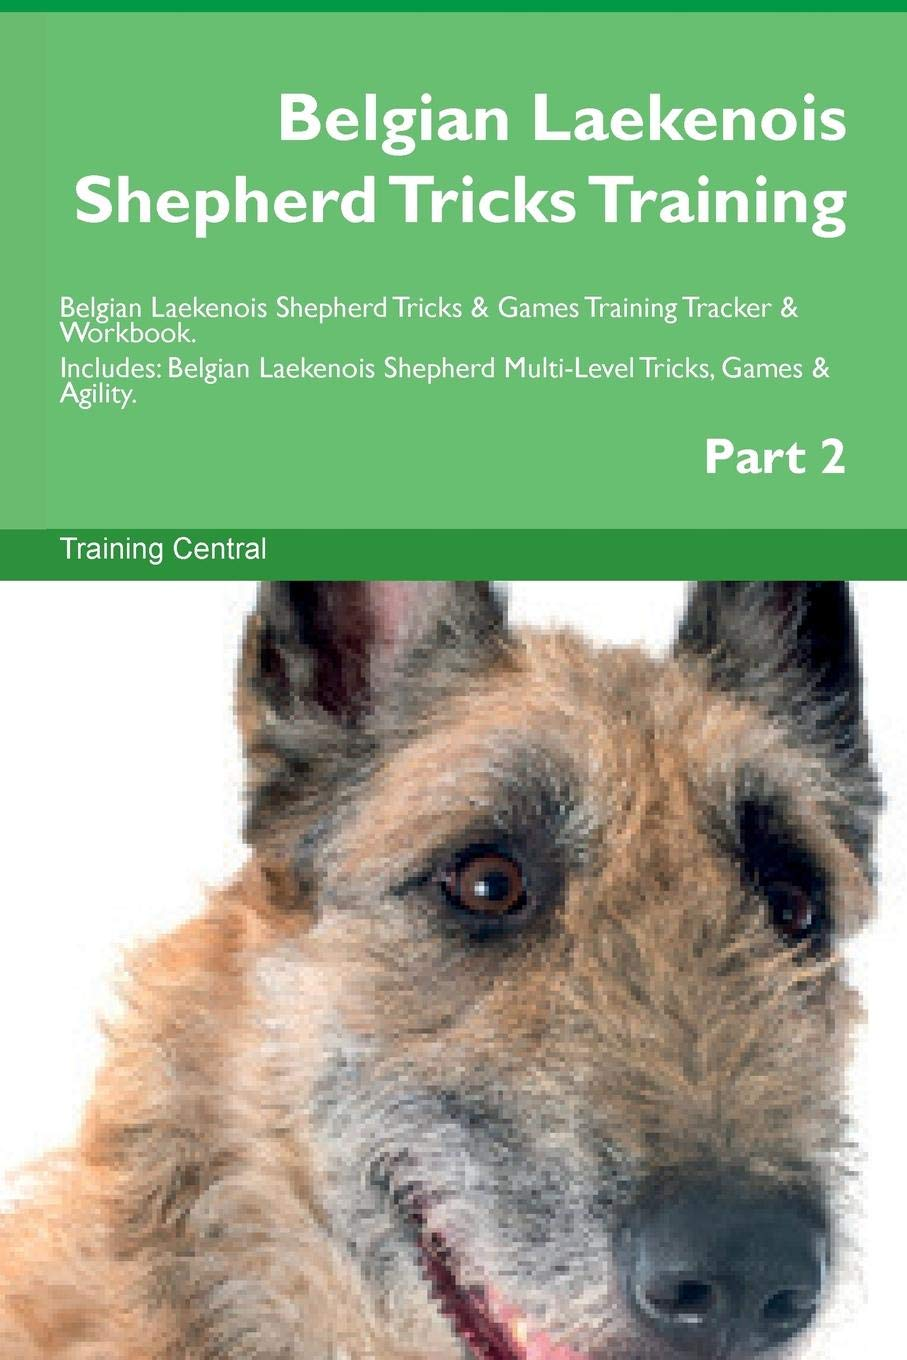 Belgian Laekenois Shepherd Tricks Training Belgian Laekenois Shepherd Tricks & Games Training Tracker & Workbook…